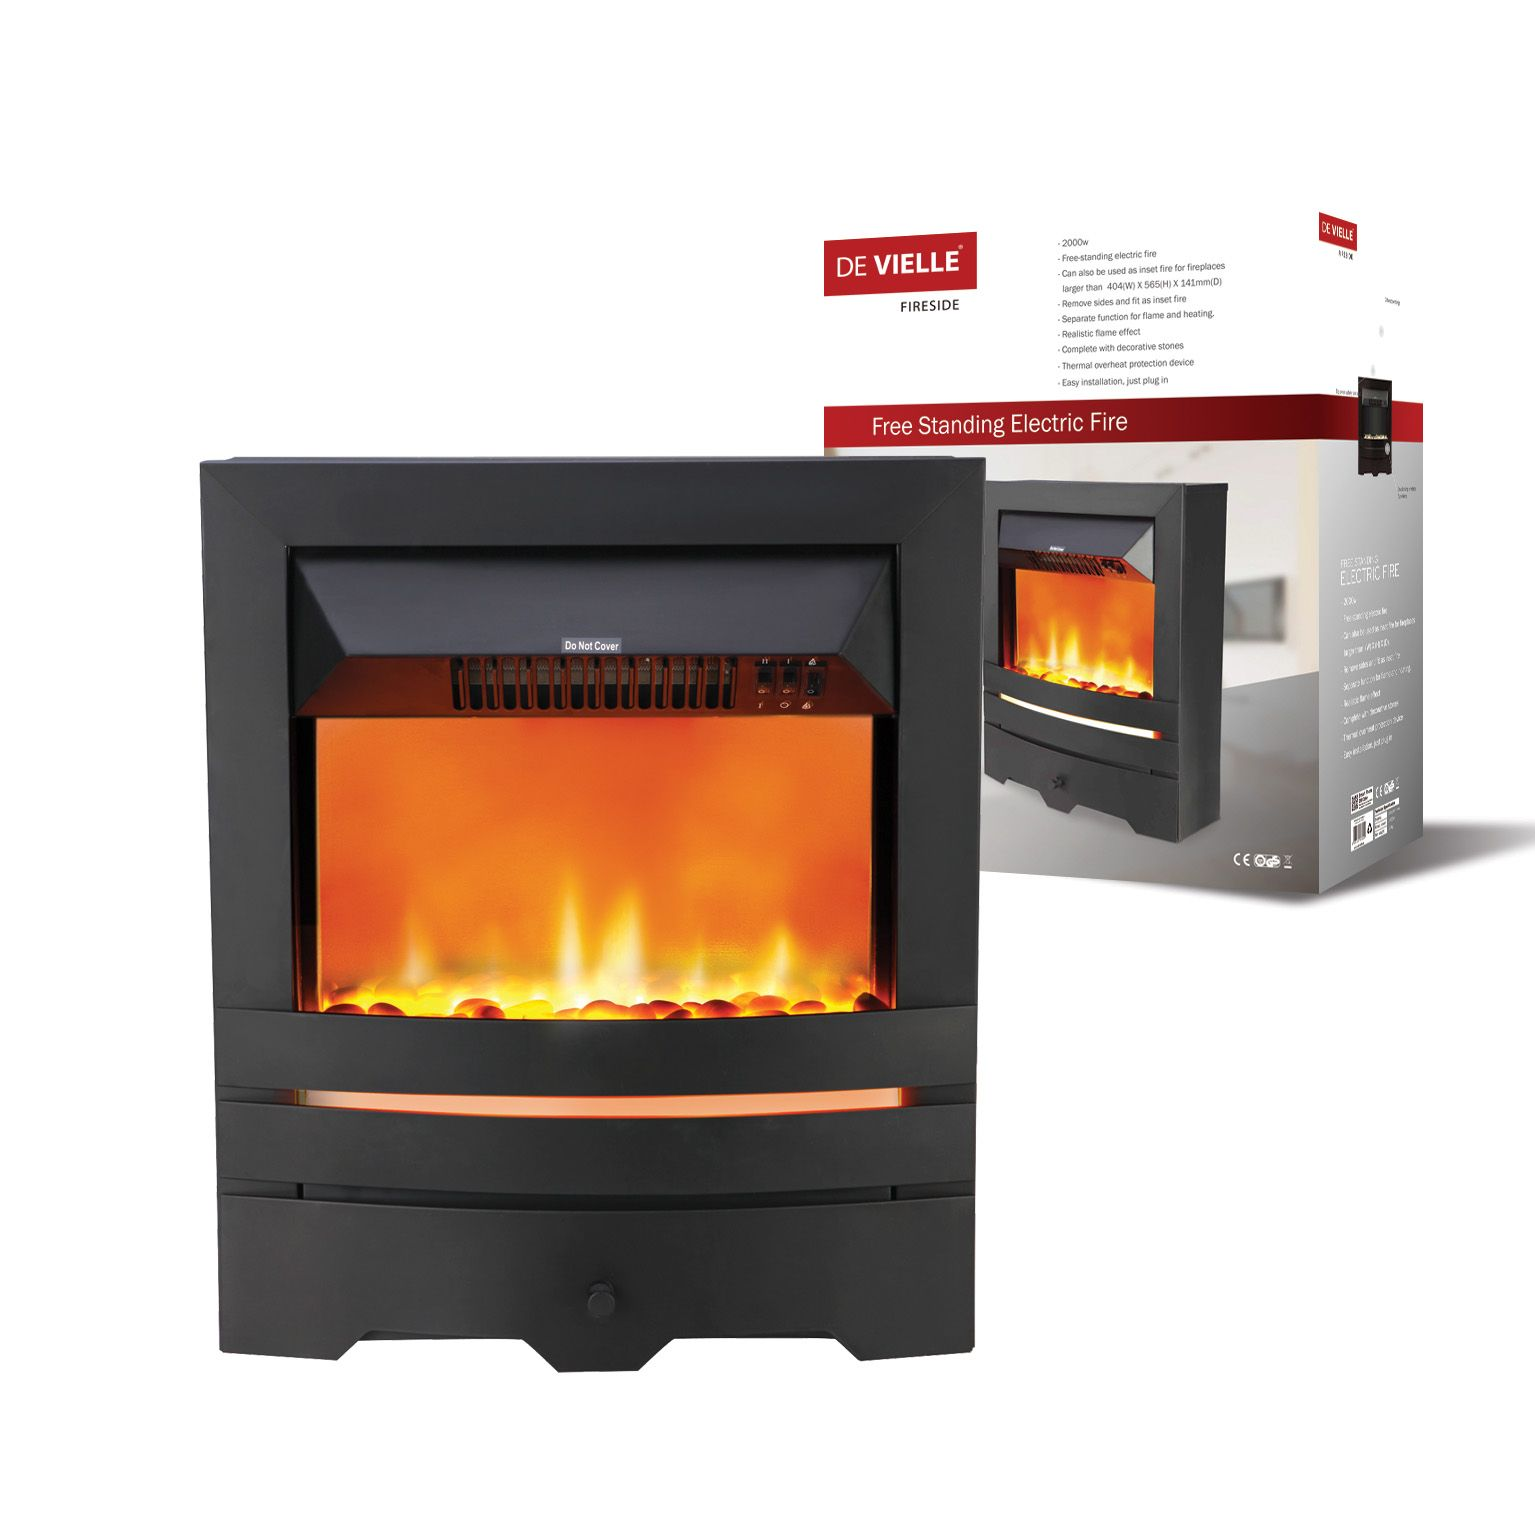 De Ville Free Standing Electric Fire 149 Fire Electrical Cork